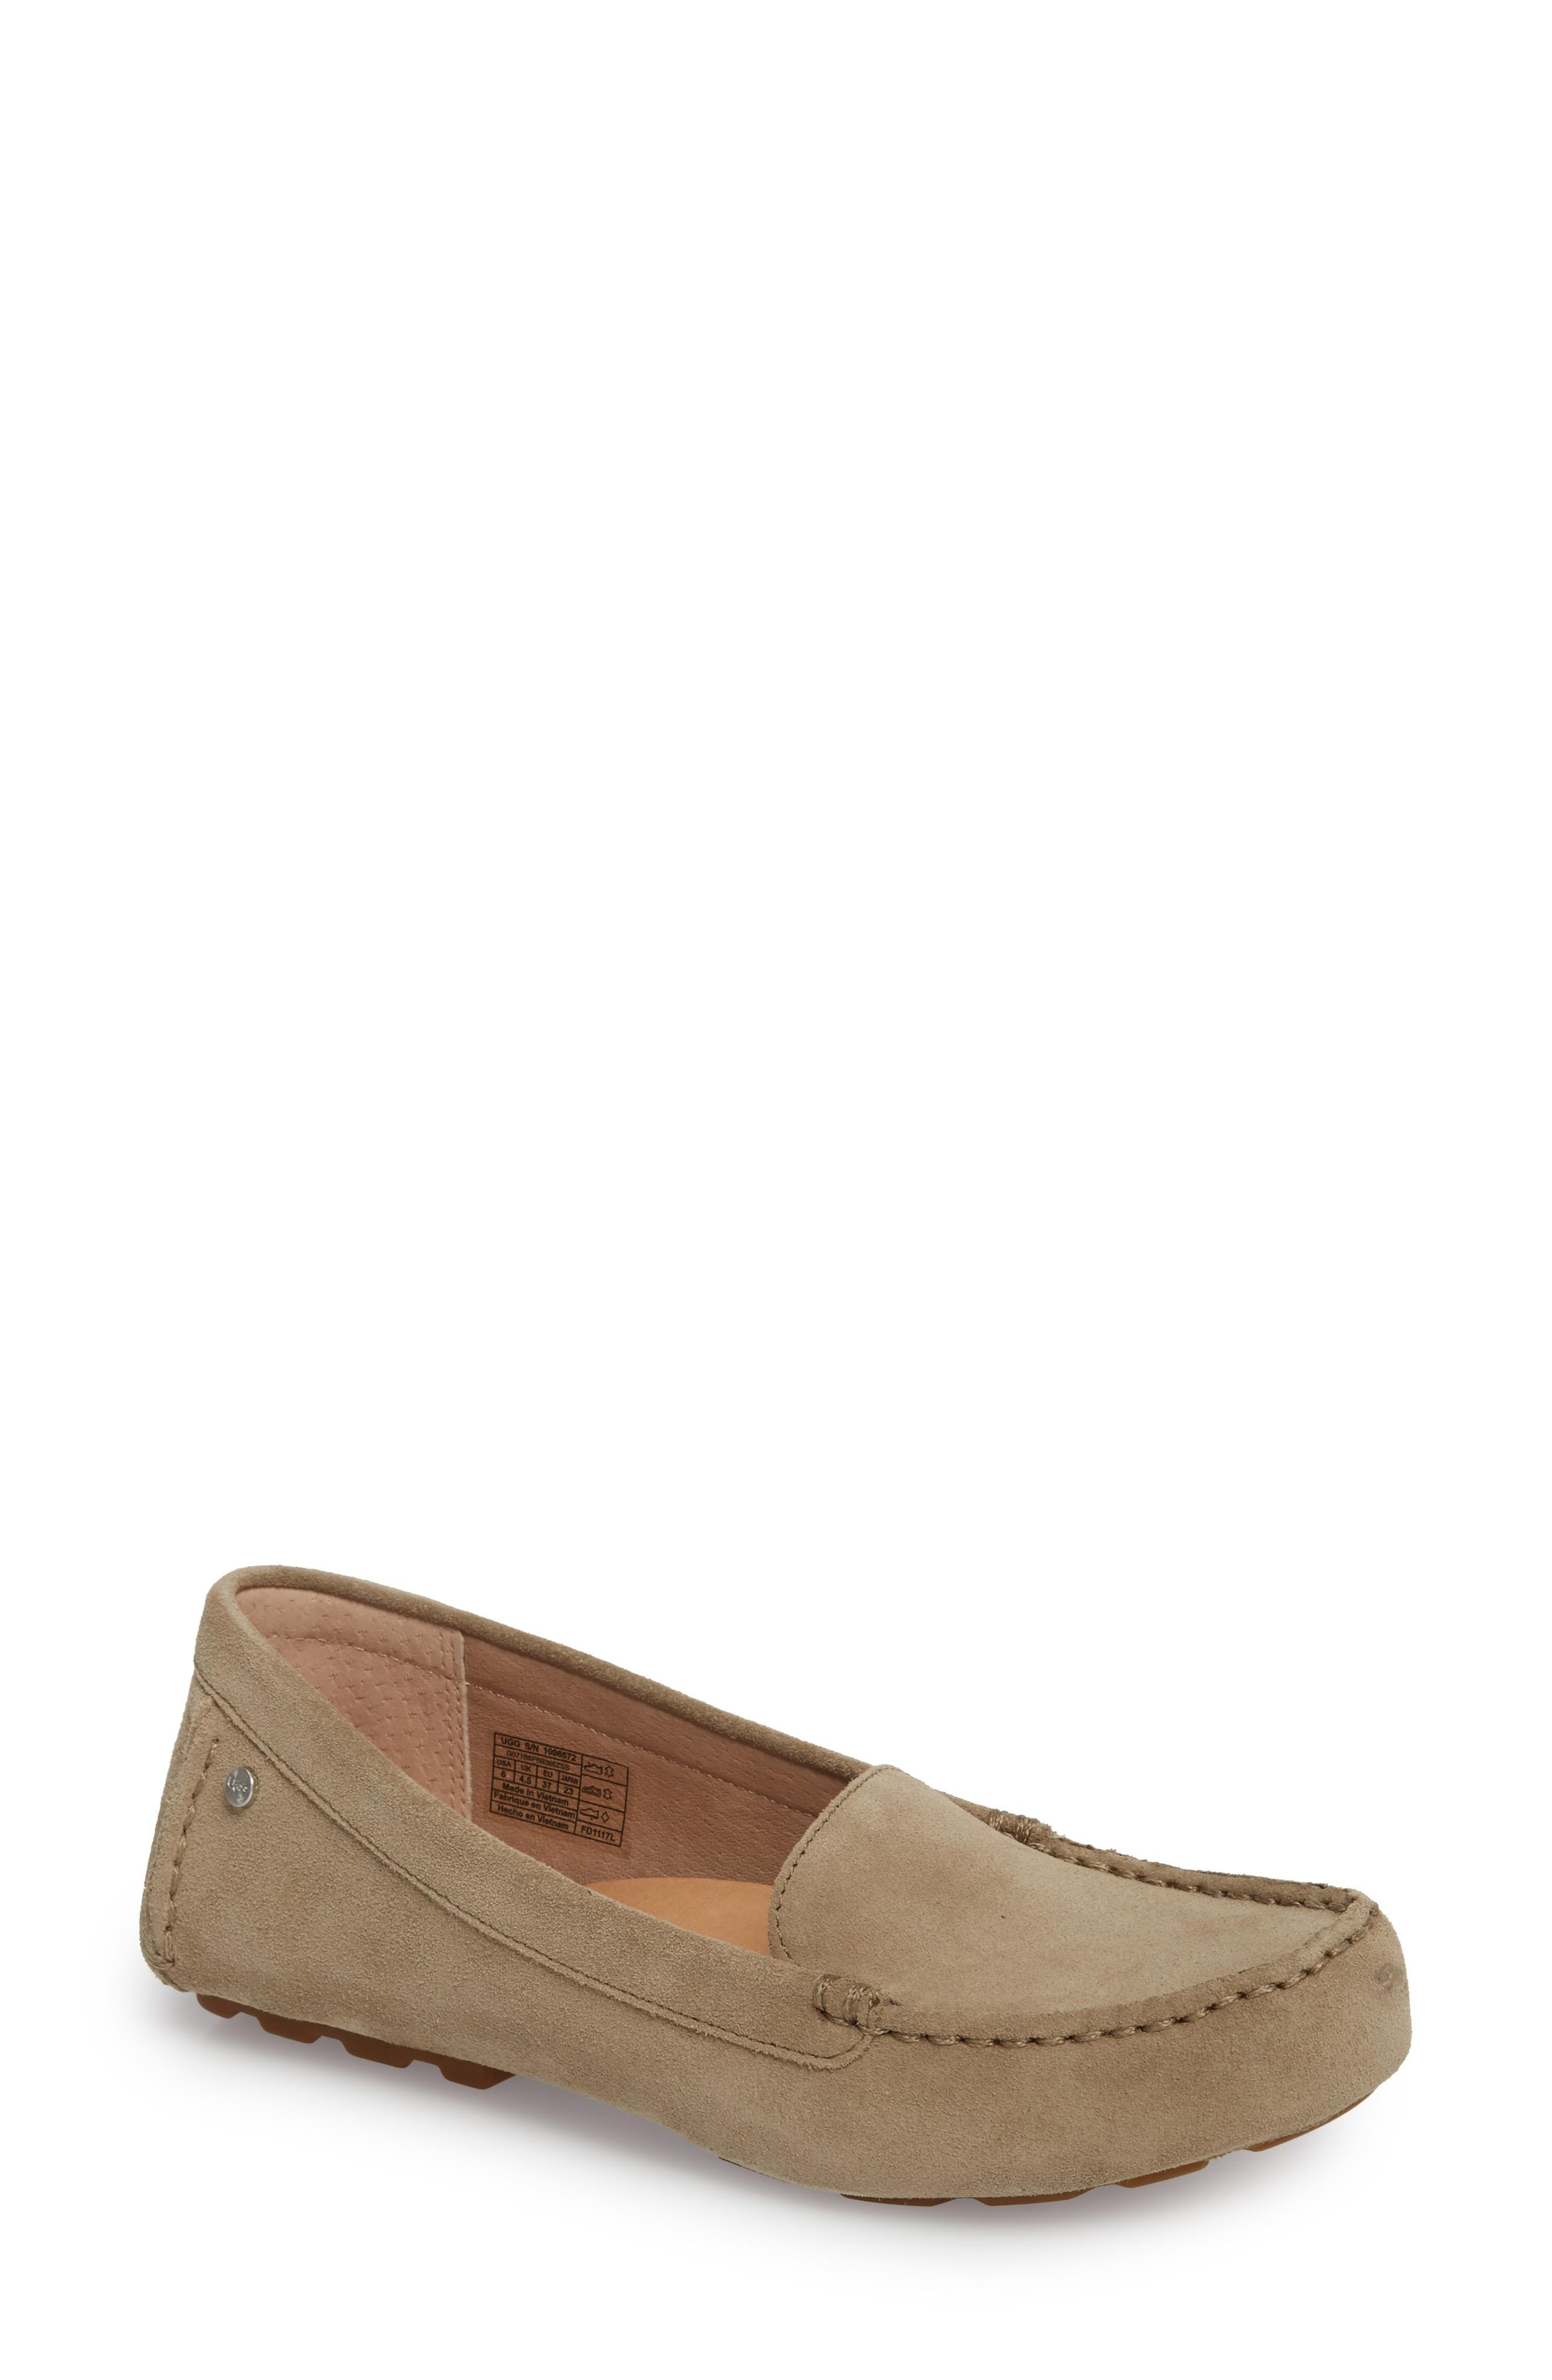 0f01c928d46 Triple-layer foam cushioning in the Imprint by UGG footbed offers excellent  comfort in a flexible